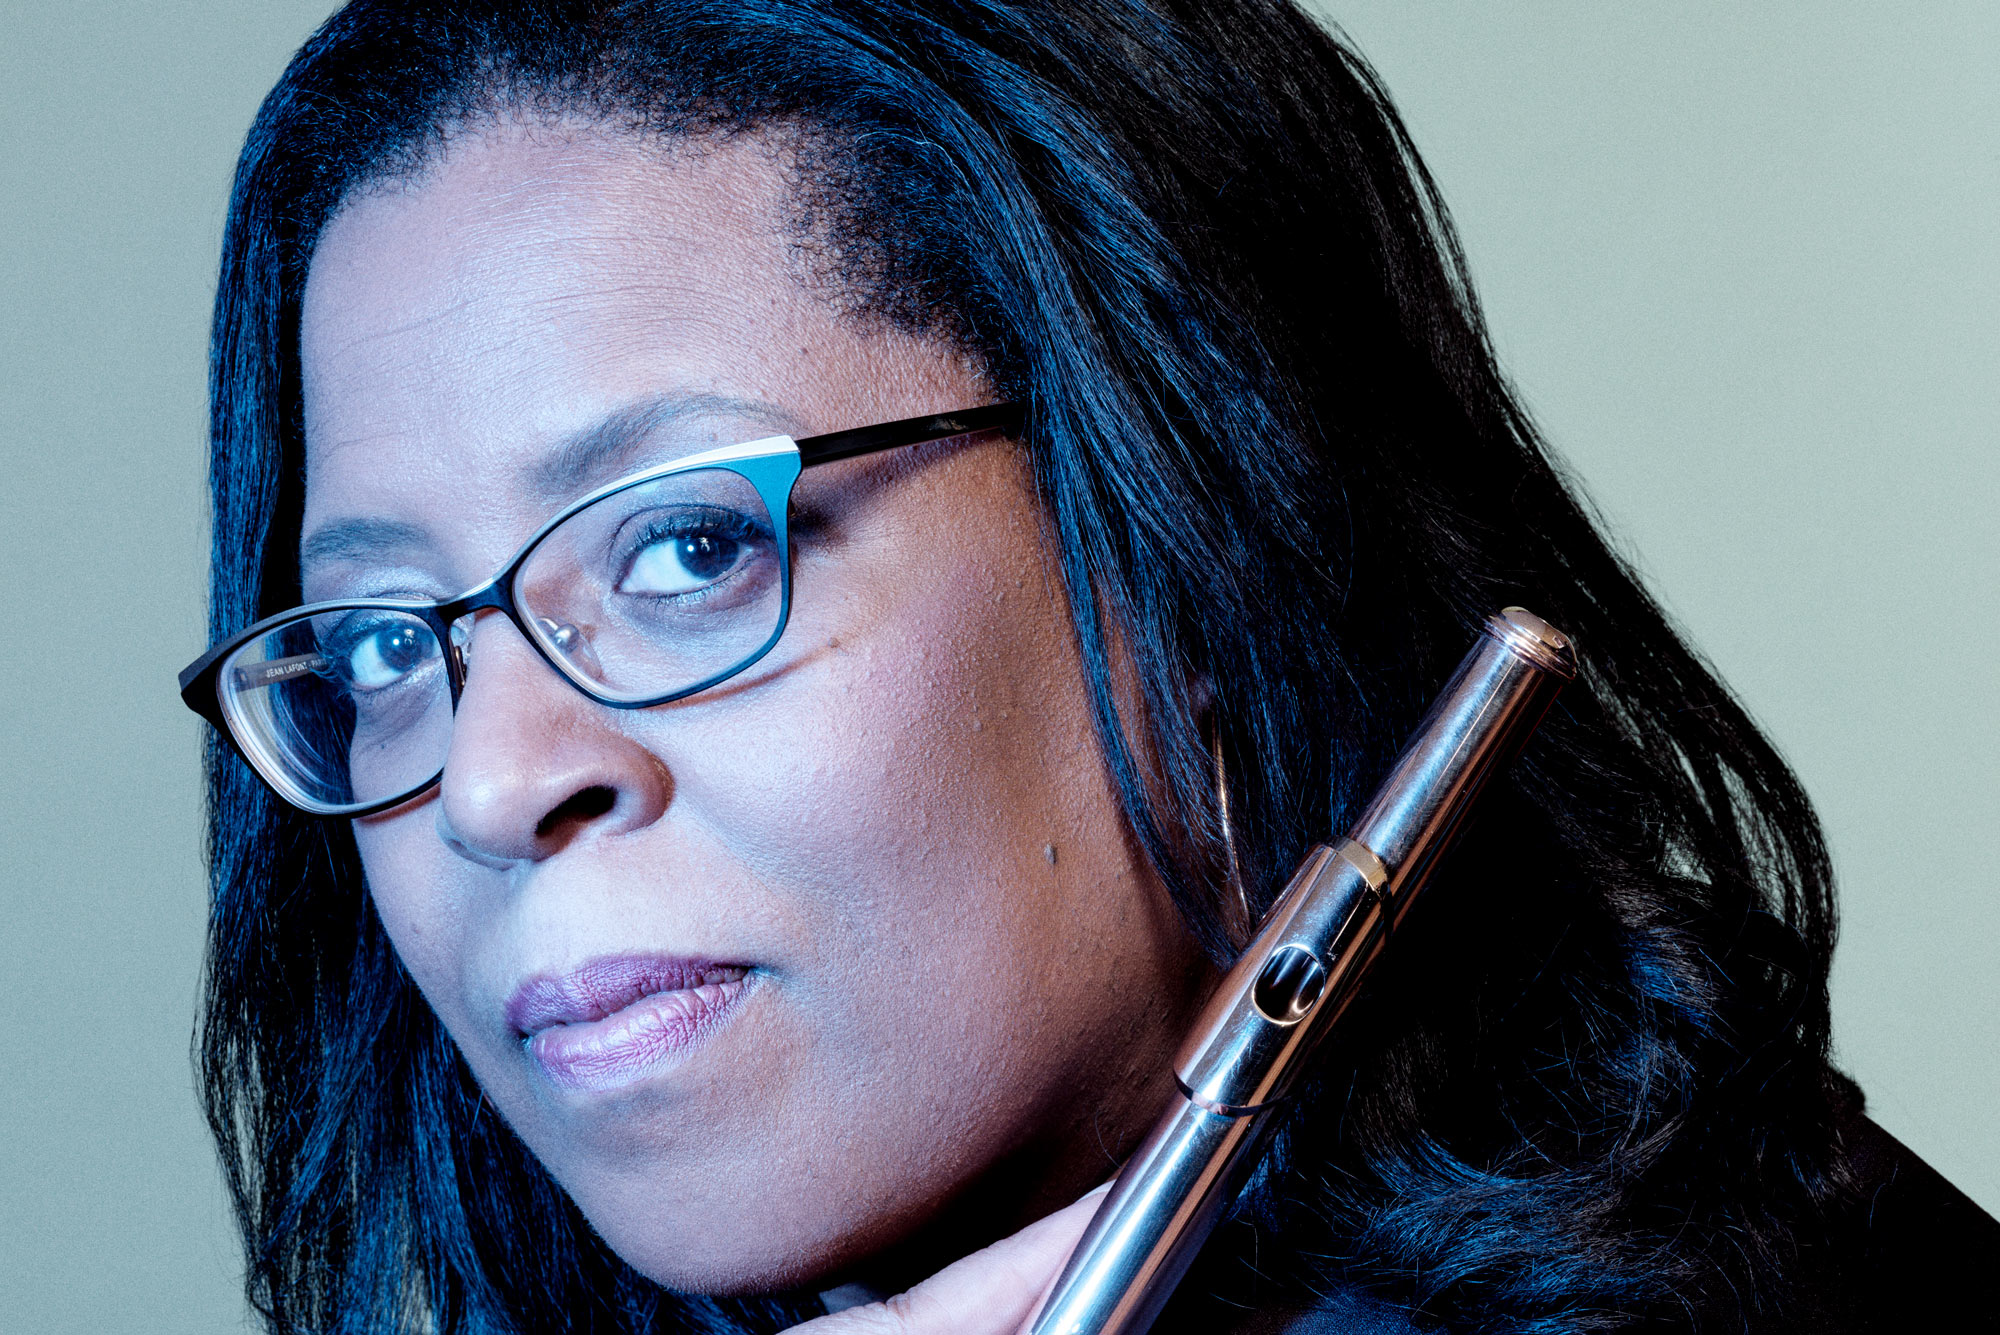 A portrait photo of Valerie Coleman with her flute